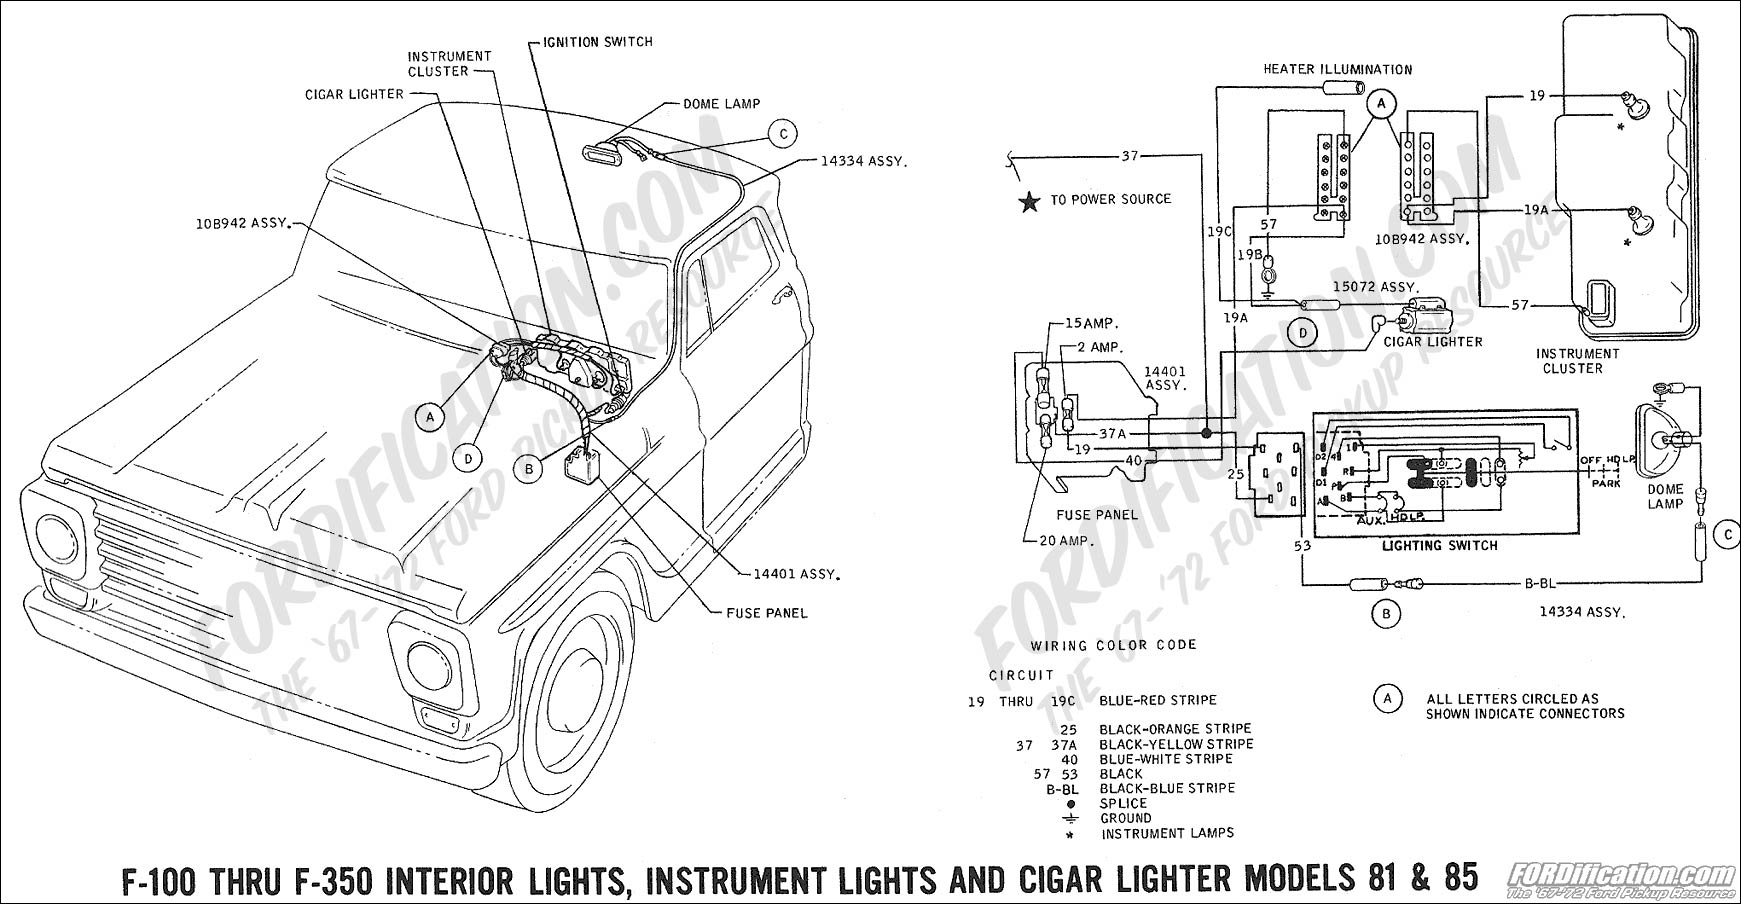 66 Ford F100 Wiring Diagram On 69, 66, Free Engine Image